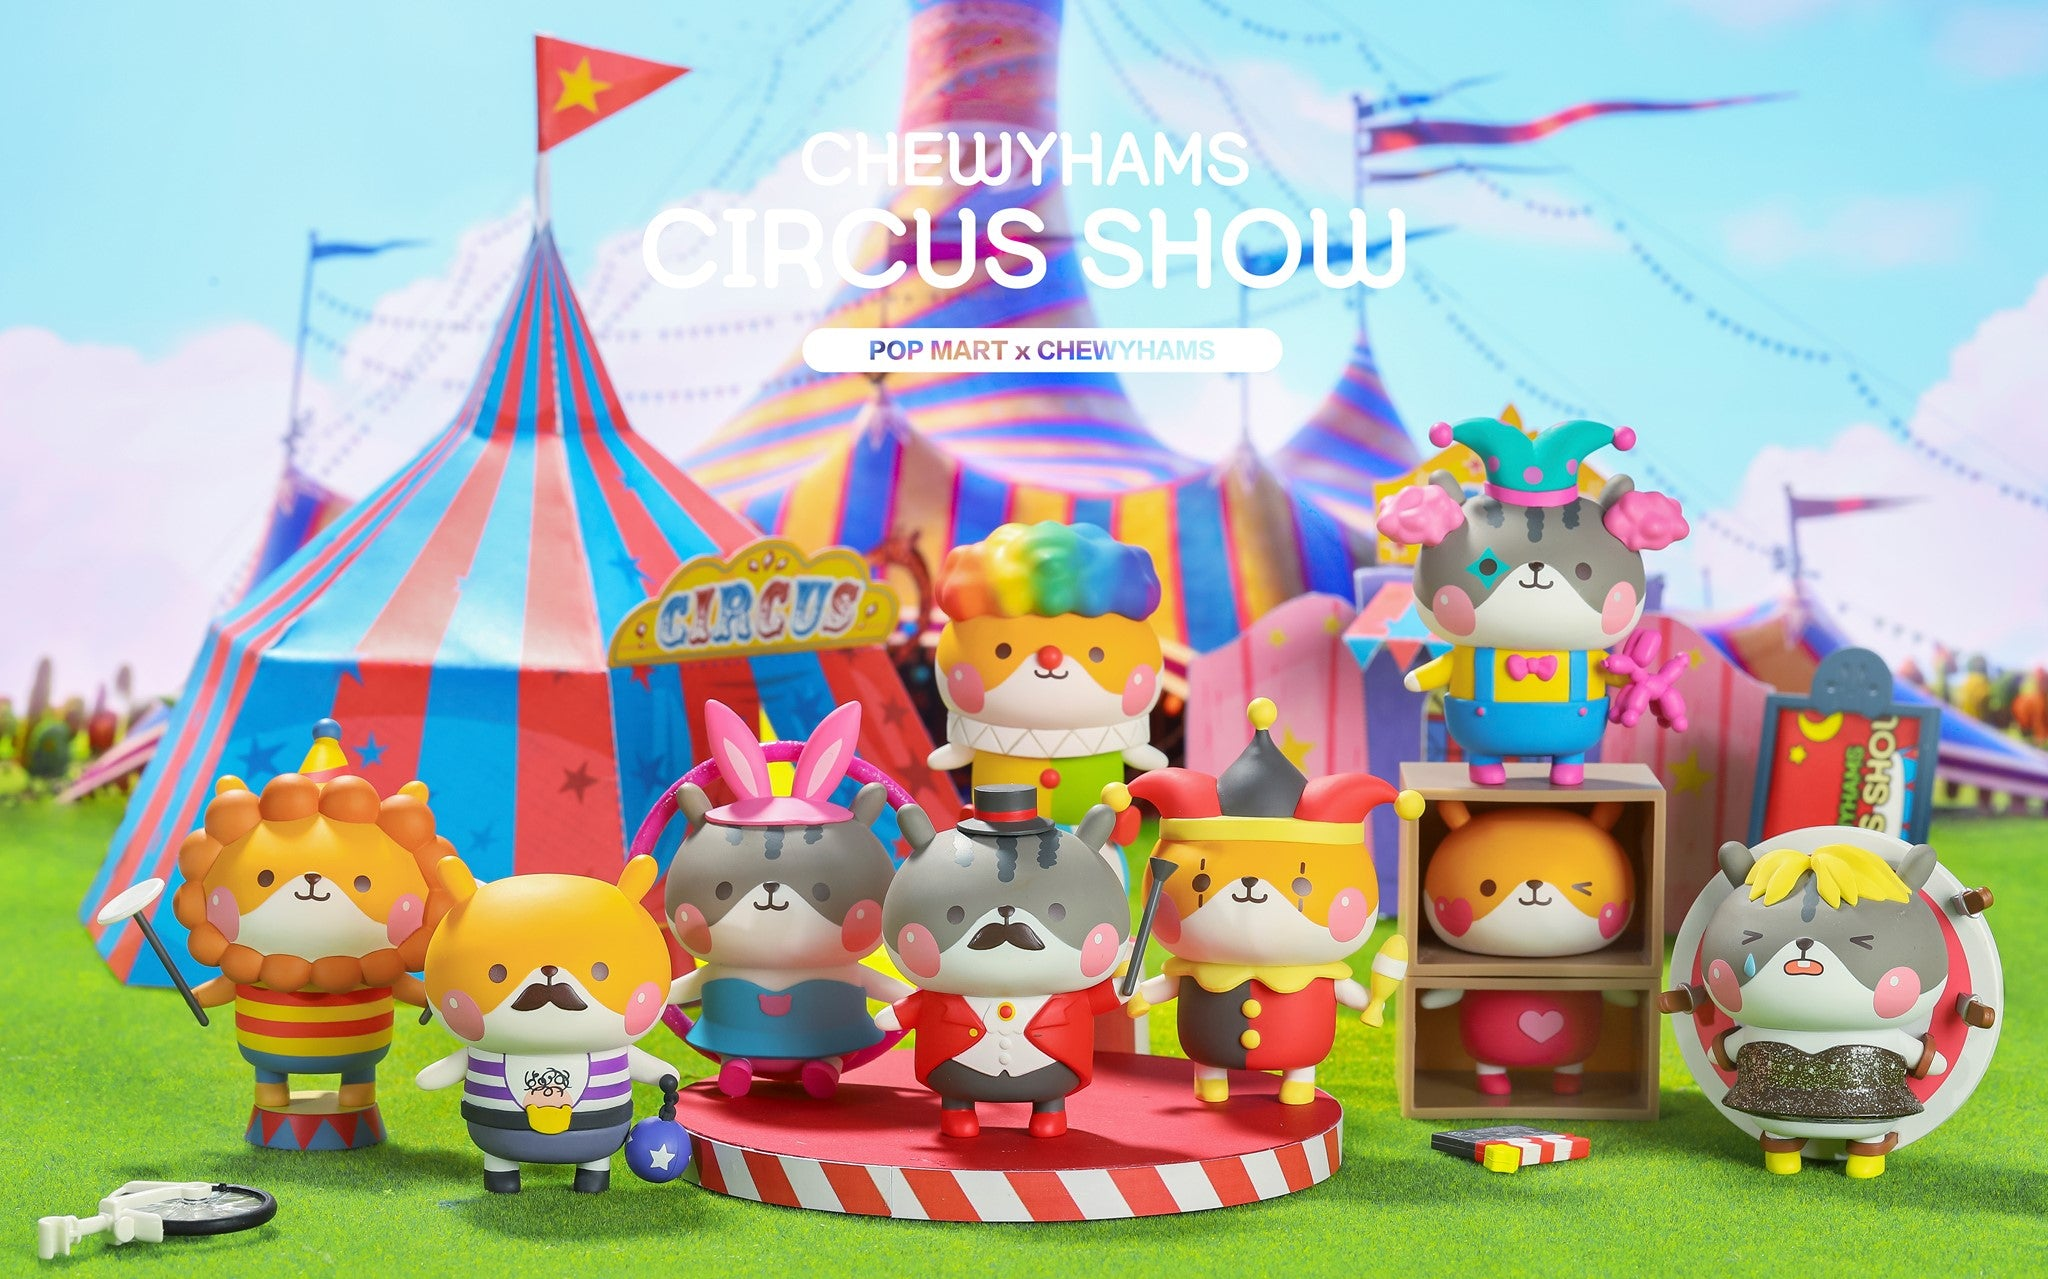 Chewy Hams Circus Blind Box Series by Funi x POP MART